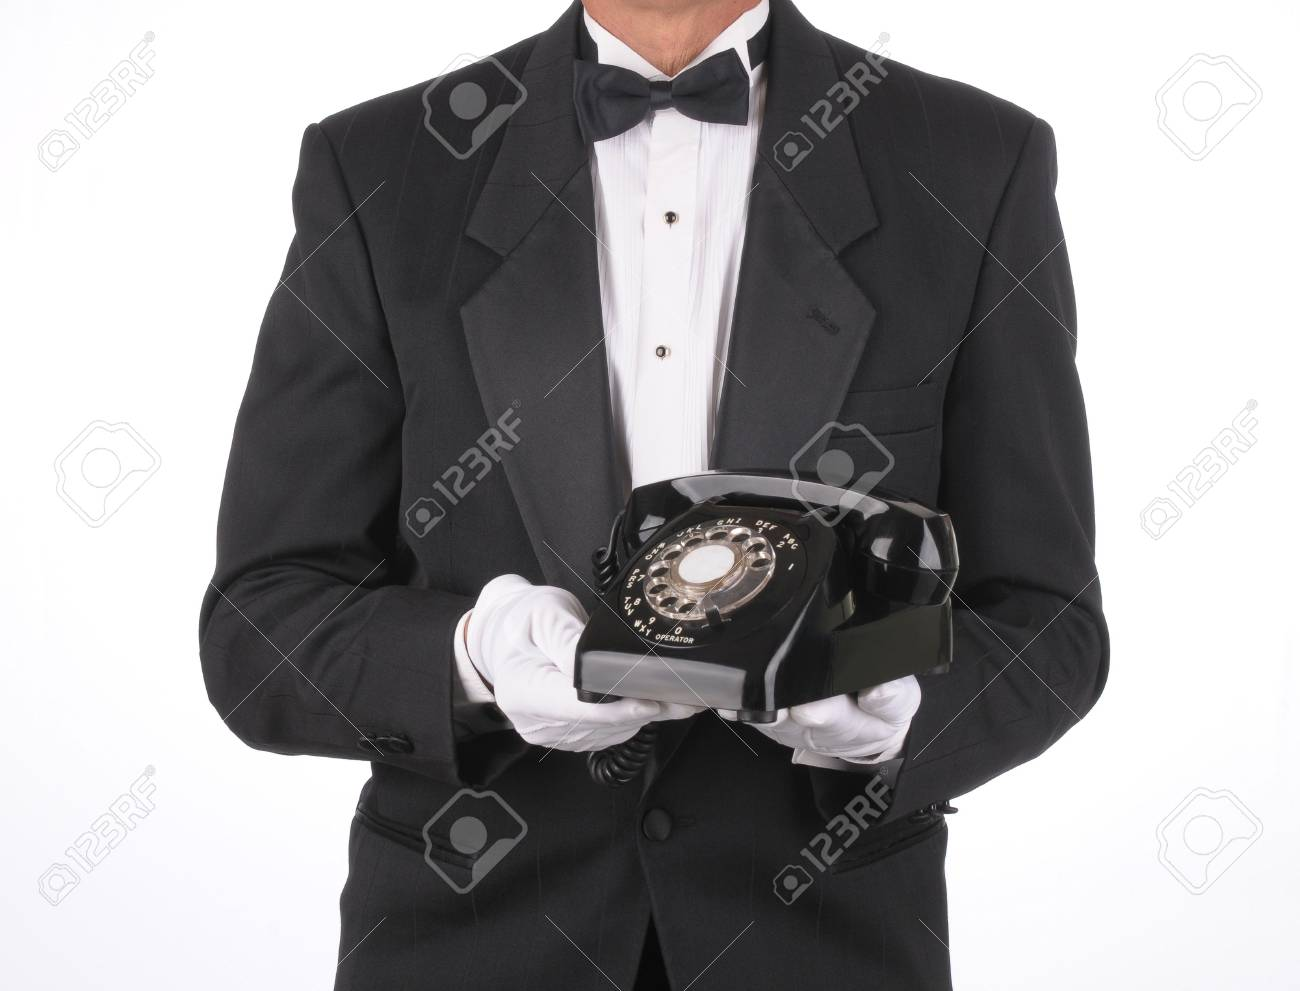 Butler in Tuxedo holding an old rotary telephone in front of his body. Torso shot only isolated over a white background. Stock Photo - 8094206